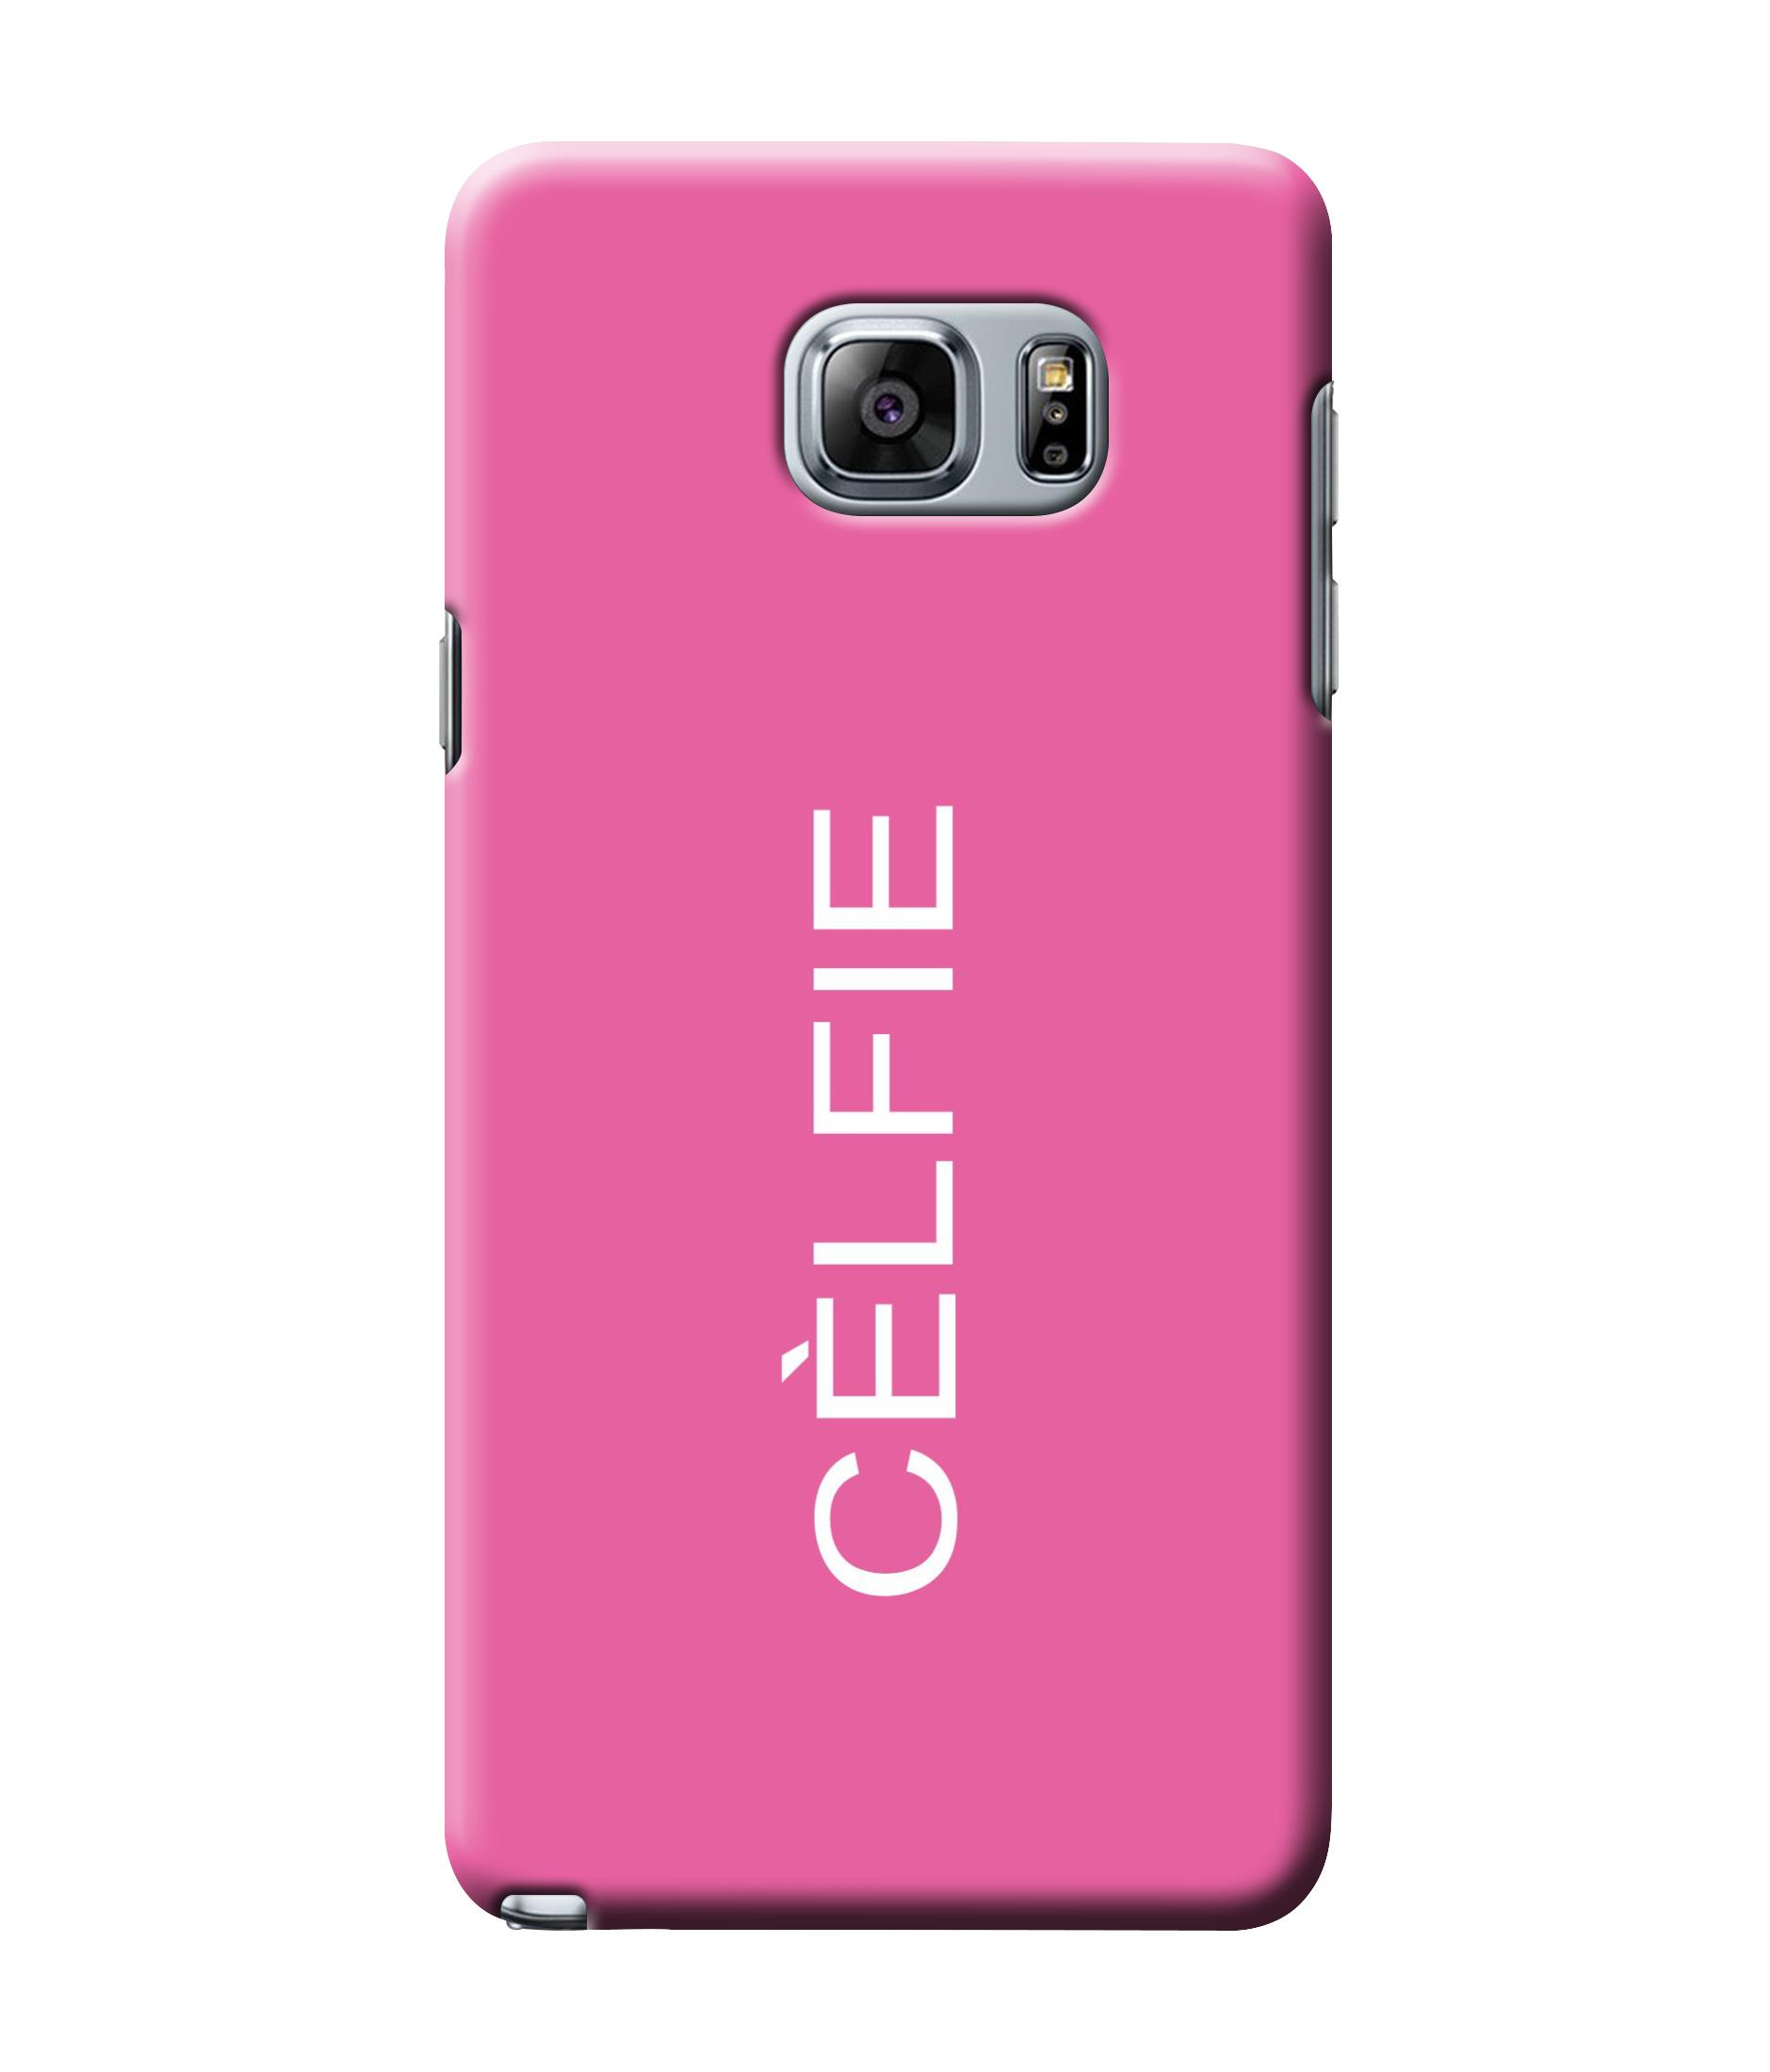 caseophile2 Samsung Galaxy Note 5 Celfie Pink Mobile Case